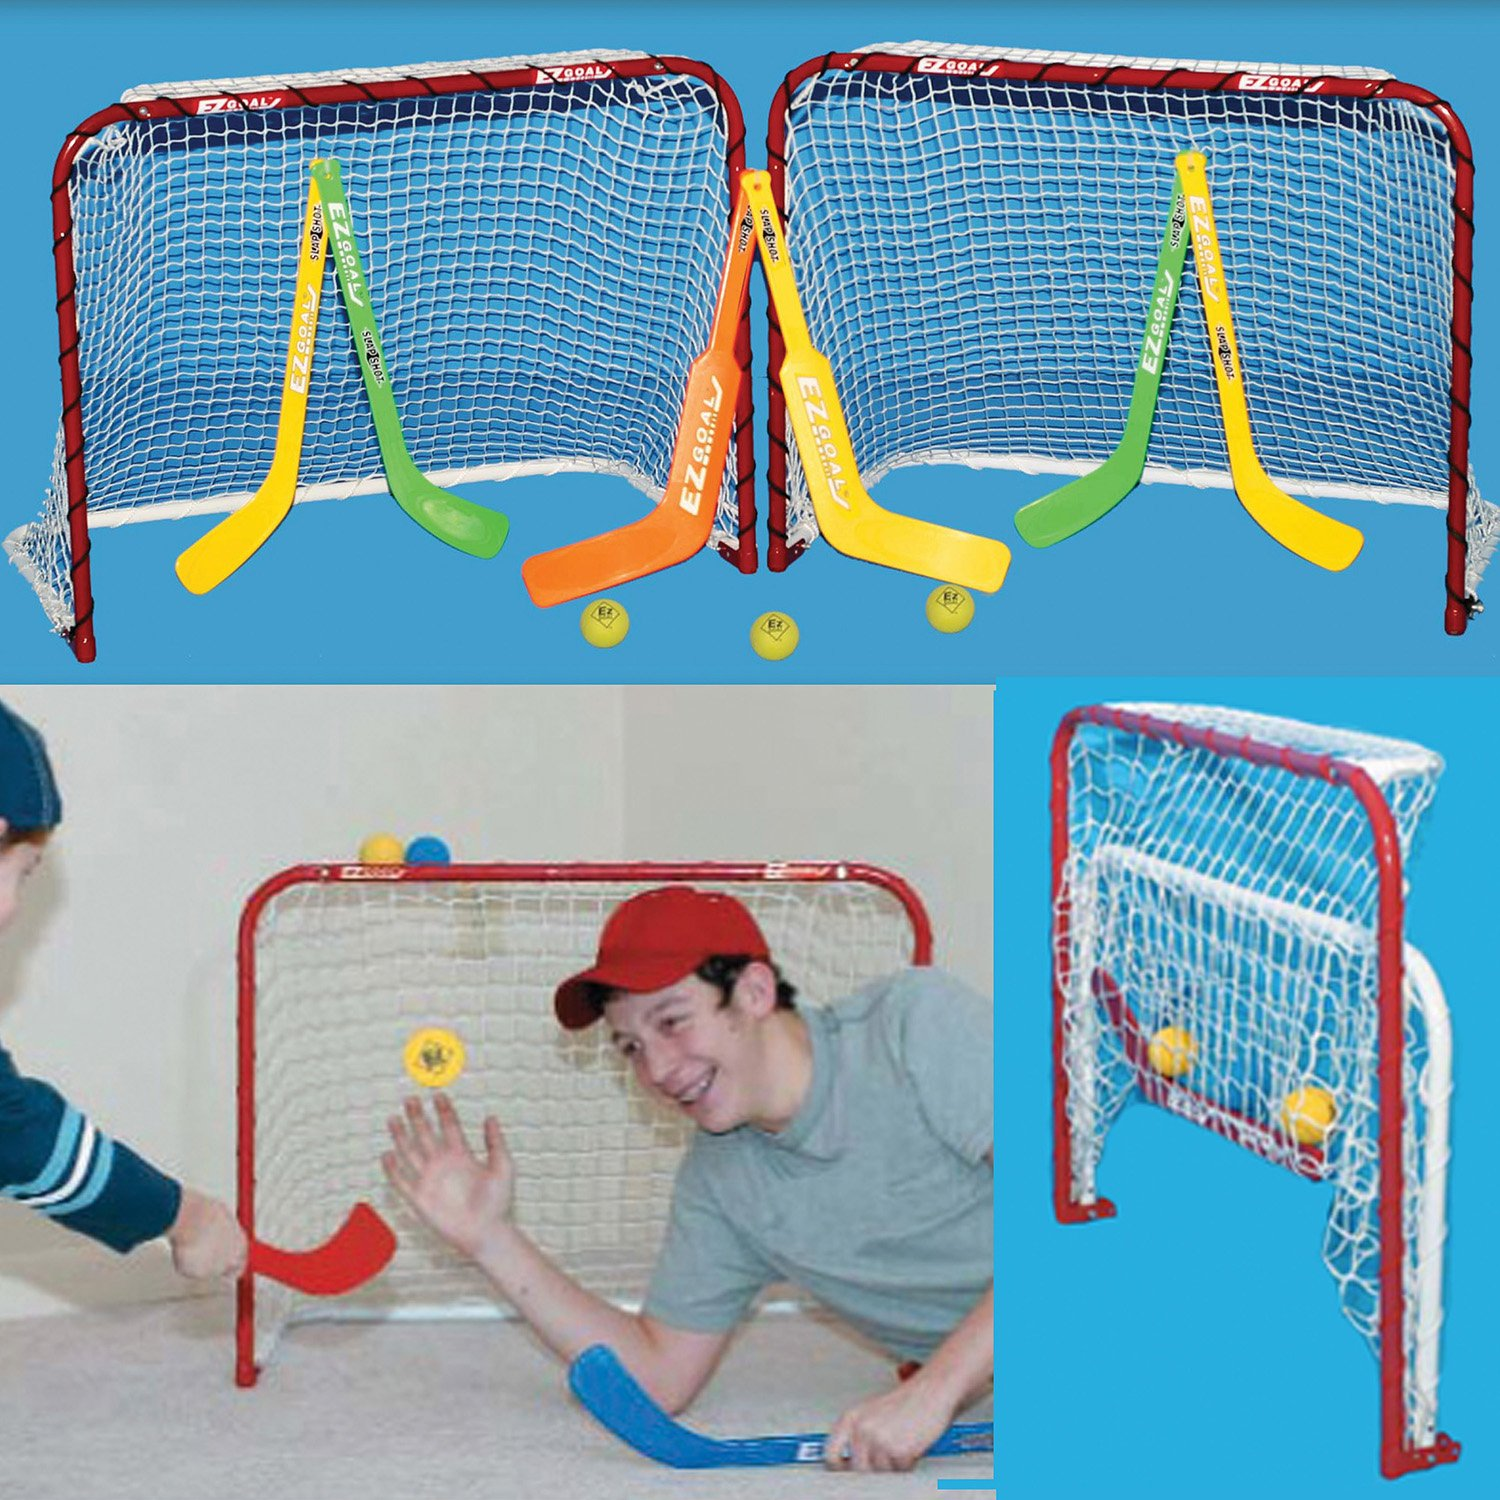 EZGoal Double Mini Folding Goal, Red/White by EZGoal (Image #2)